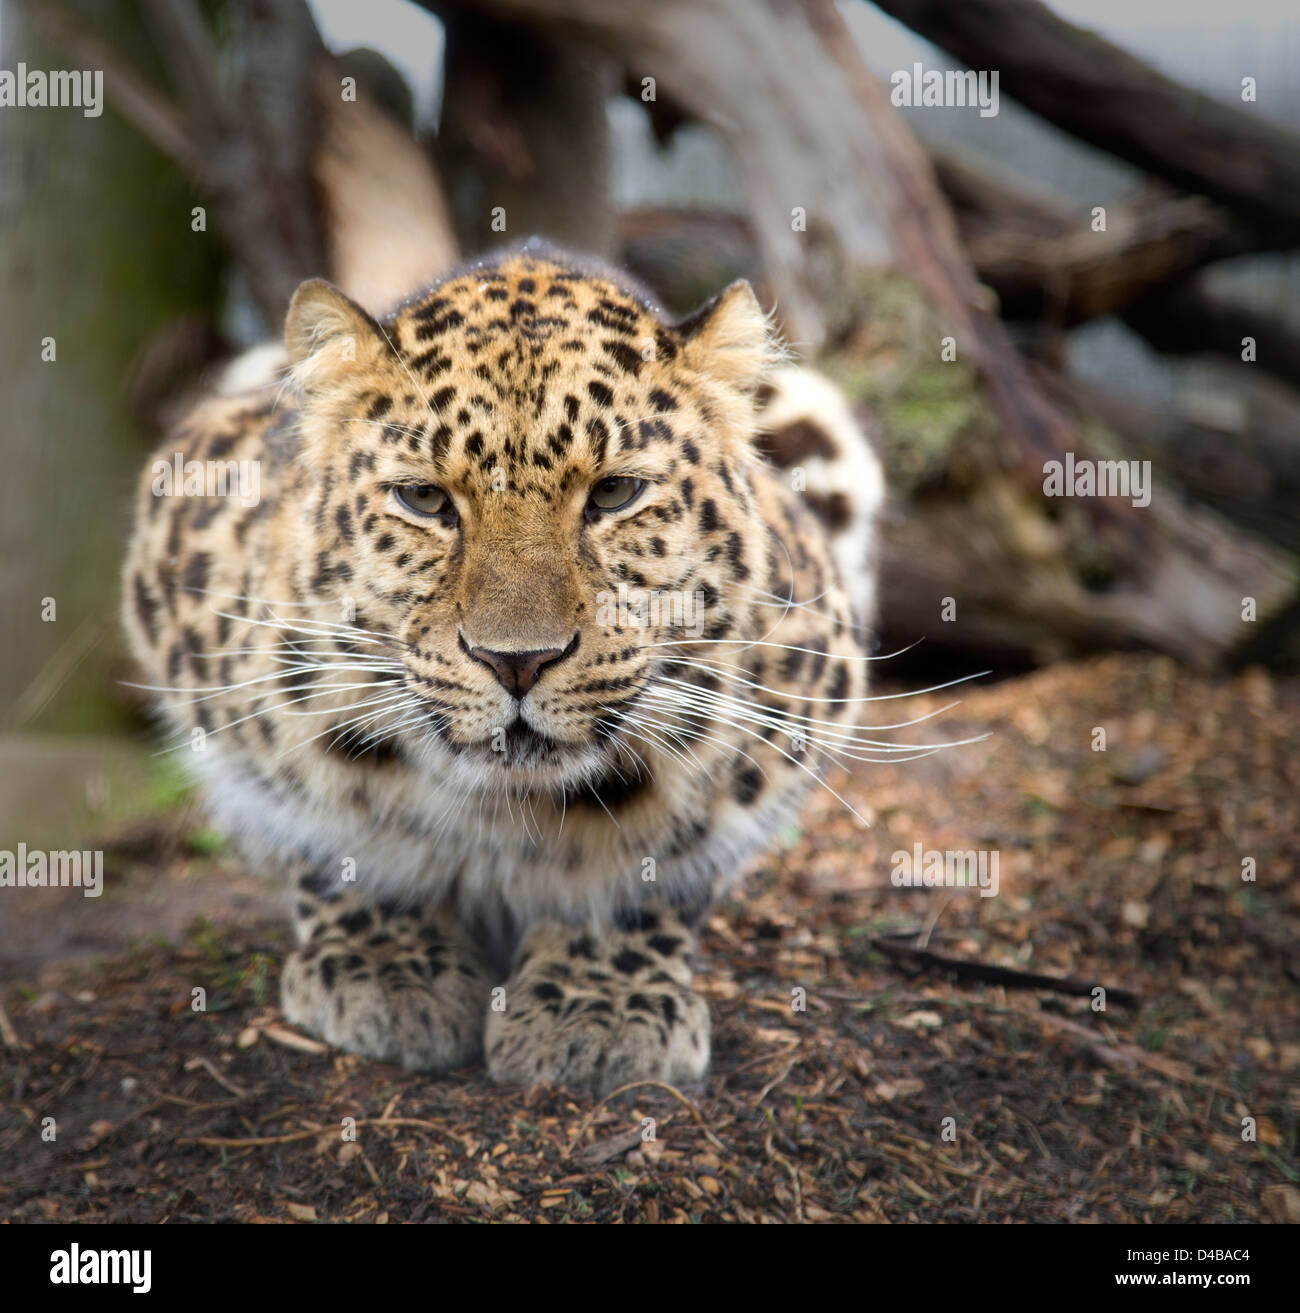 Amur leopard on its haunches looking straight ahead - Stock Image